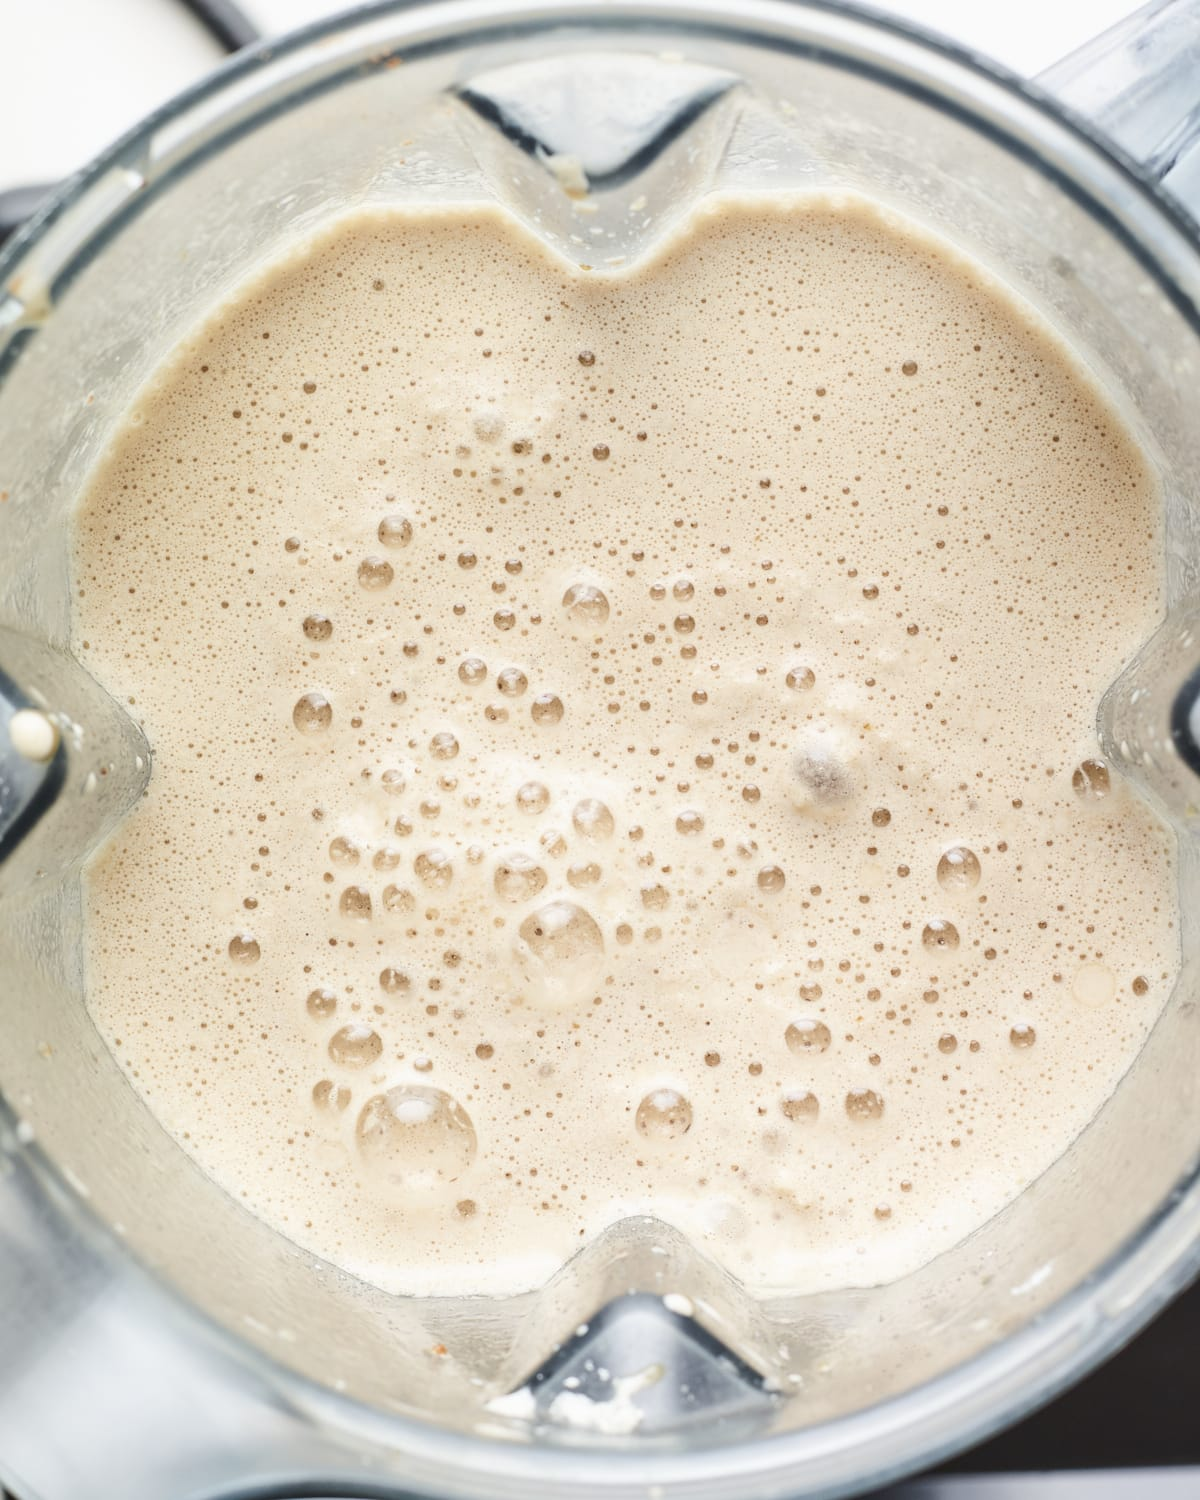 Blended Frappuccino in a blender.